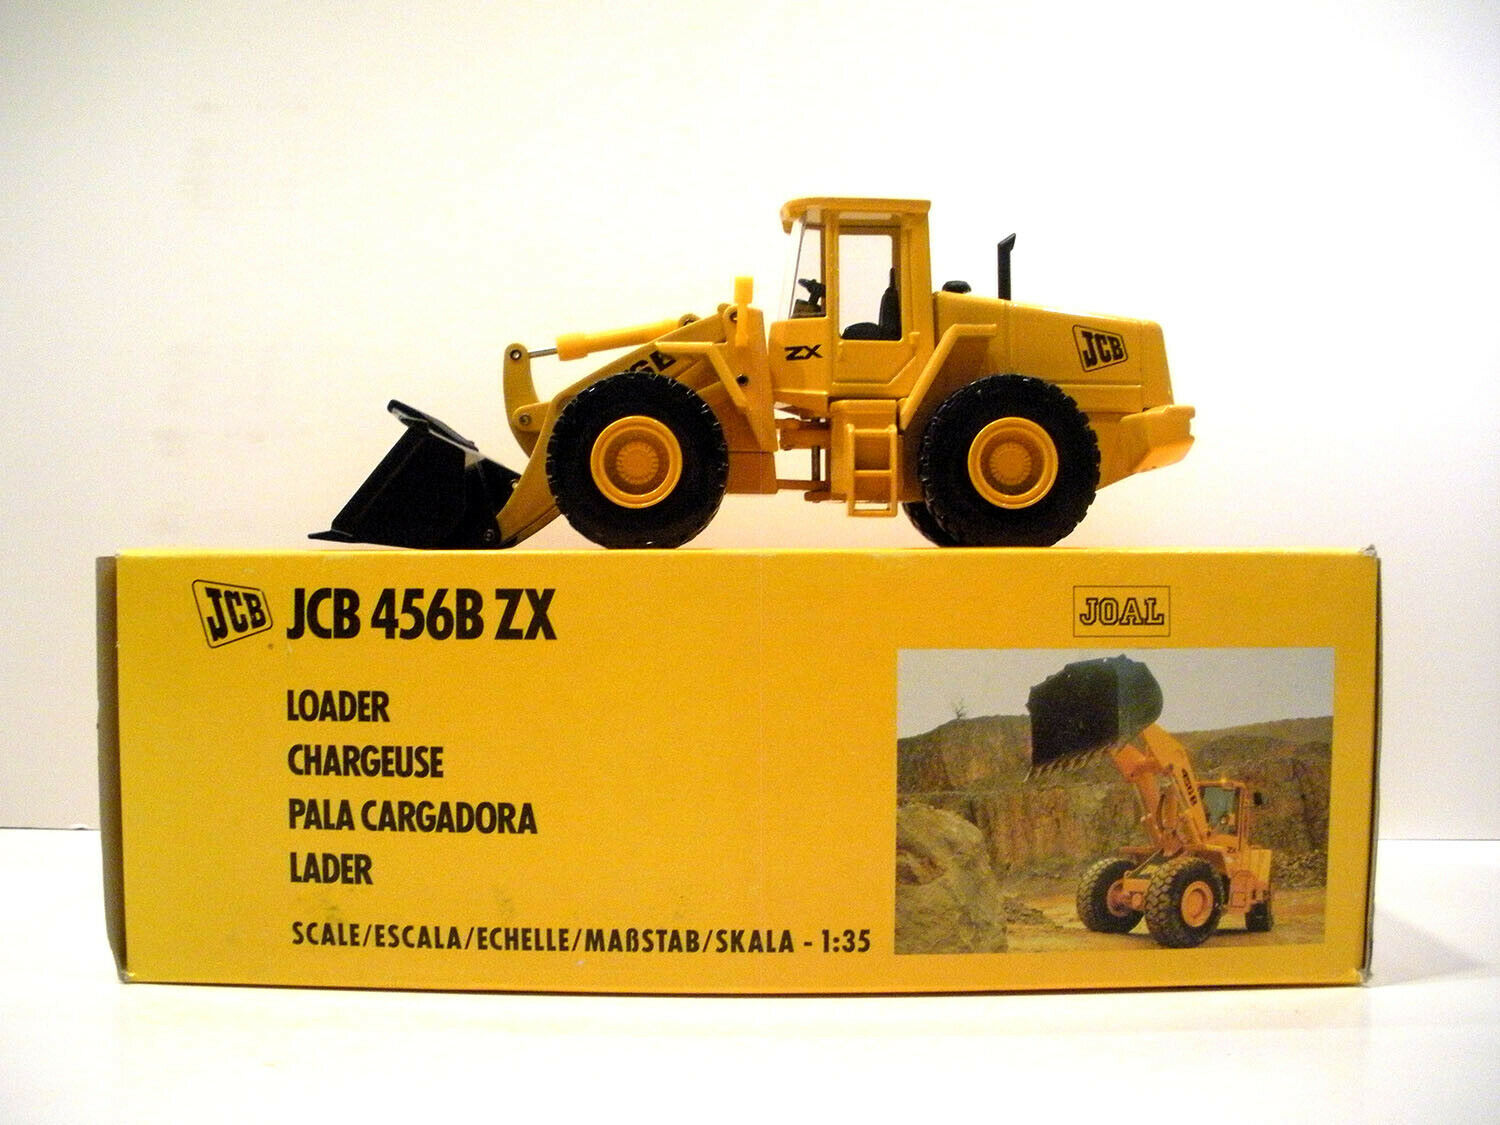 Joal 260 JCB 456 BZX Wheel Loader 1 35 Die-cast MIB